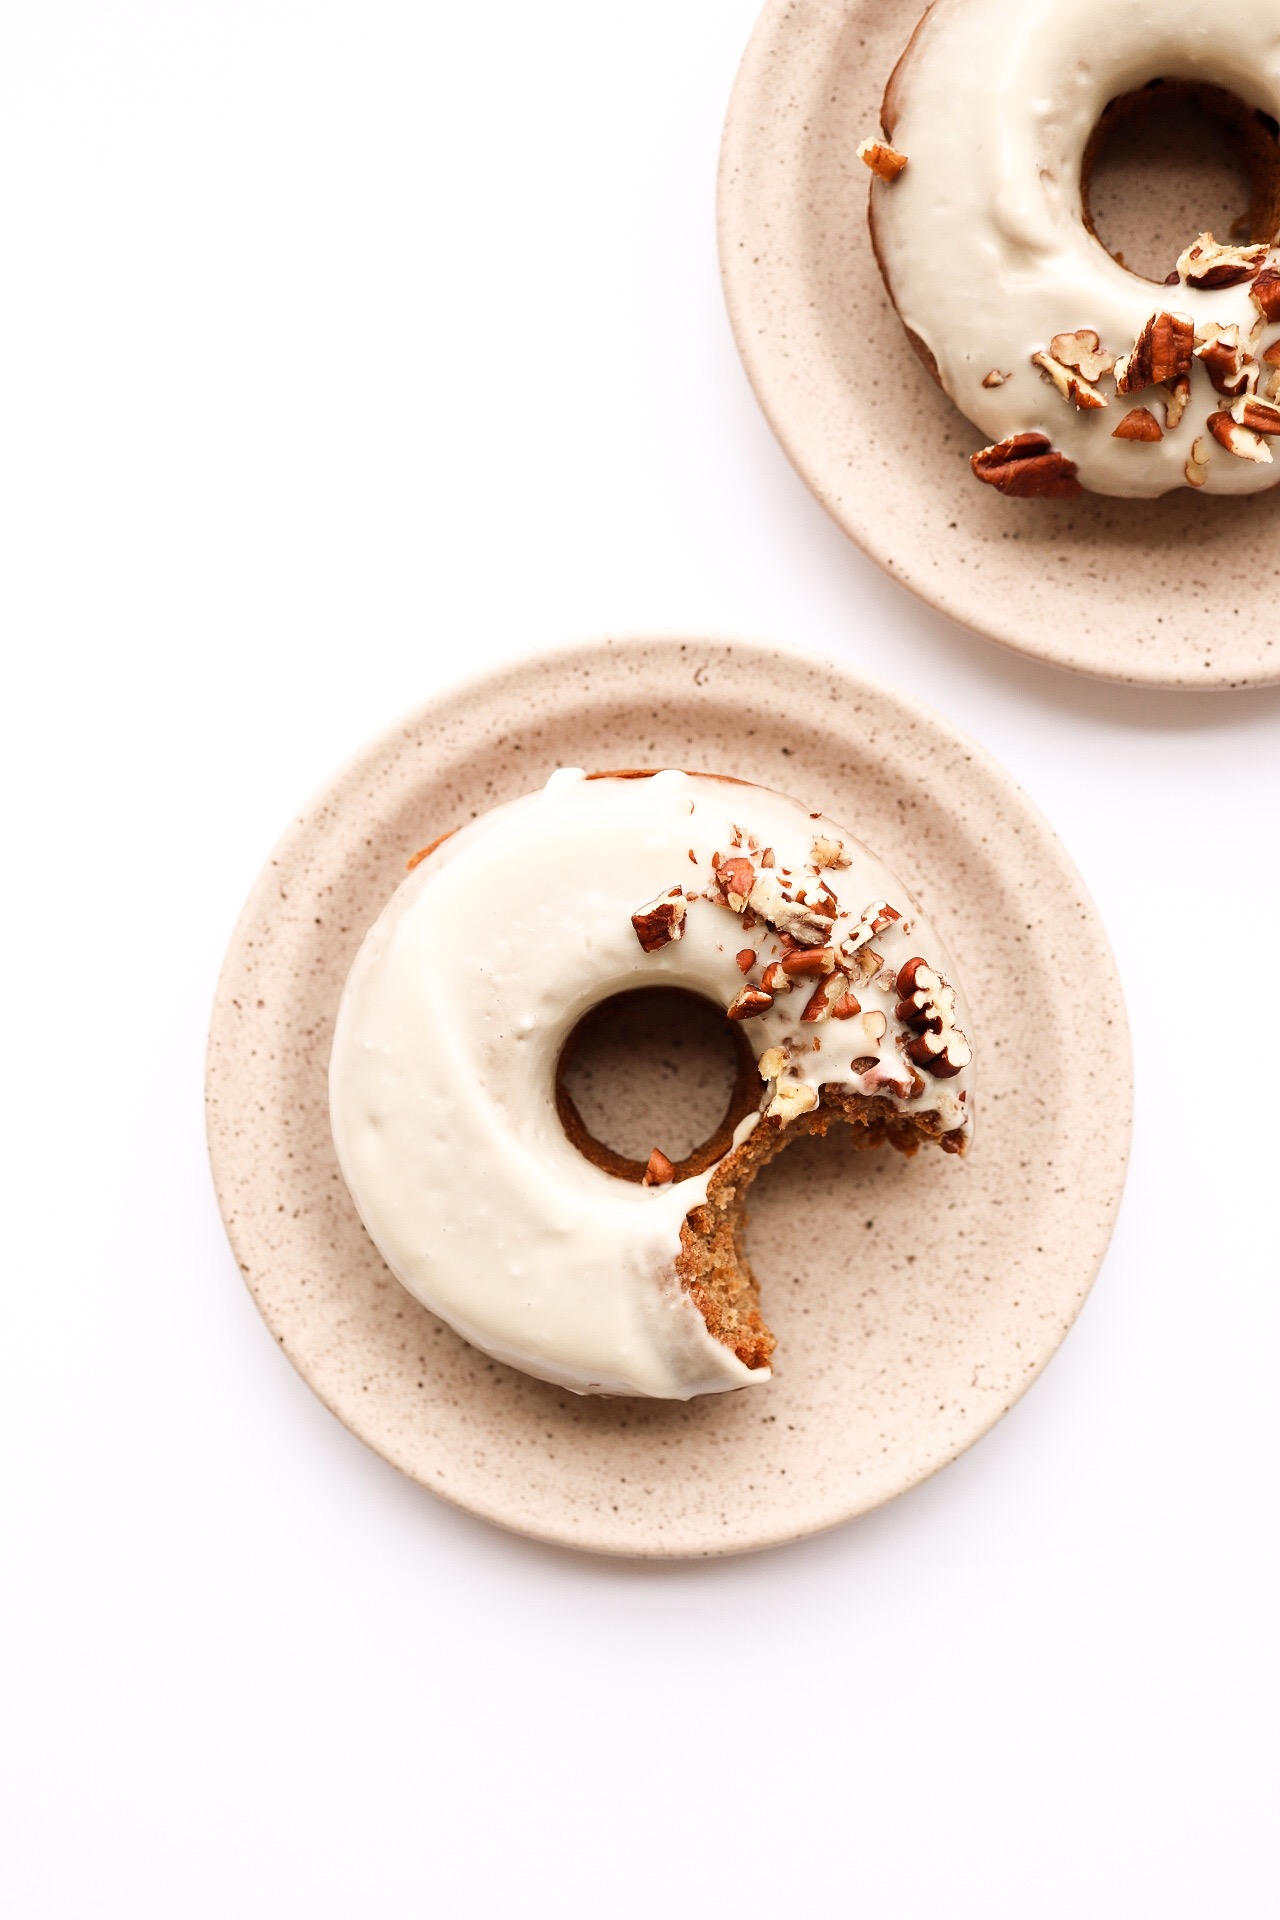 Cinnamon Spiced Doughnuts - INGREDIENTS:1 cup all purpose flour1 tsp baking powder1 tsp baking soda1/2 tsp salt1 tsp cinnamon1/4 tsp nutmeg1/3 cup apple sauce1/3 cup maple syrup1/4 cup water1 Tbsp oil1 1/2 Tbsp apple cider vinegarGLAZE:8 oz vegan cream cheese3 Tbsp maple syrup1/4 cup plant milkINSTRUCTIONS:Preheat your oven to 350F. In a medium bowl, whisk together the flour + baking soda + baking powder + salt + spices and set aside. In another bowl, mix together the remaining ingredients. Add your wet mixture to your dry and mix until everything if fully incorporated - but don't over-mix! Fill your six - doughnut pan with the batter, and bake for 15 minutes. While the doughnuts are baking, mix together the ingredients for the cream cheese glaze. When you take the doughnuts out of the oven, give them a moment to cool before dipping into the glaze. I sprinkles mine with pecans, and I highly recommend you do the same!